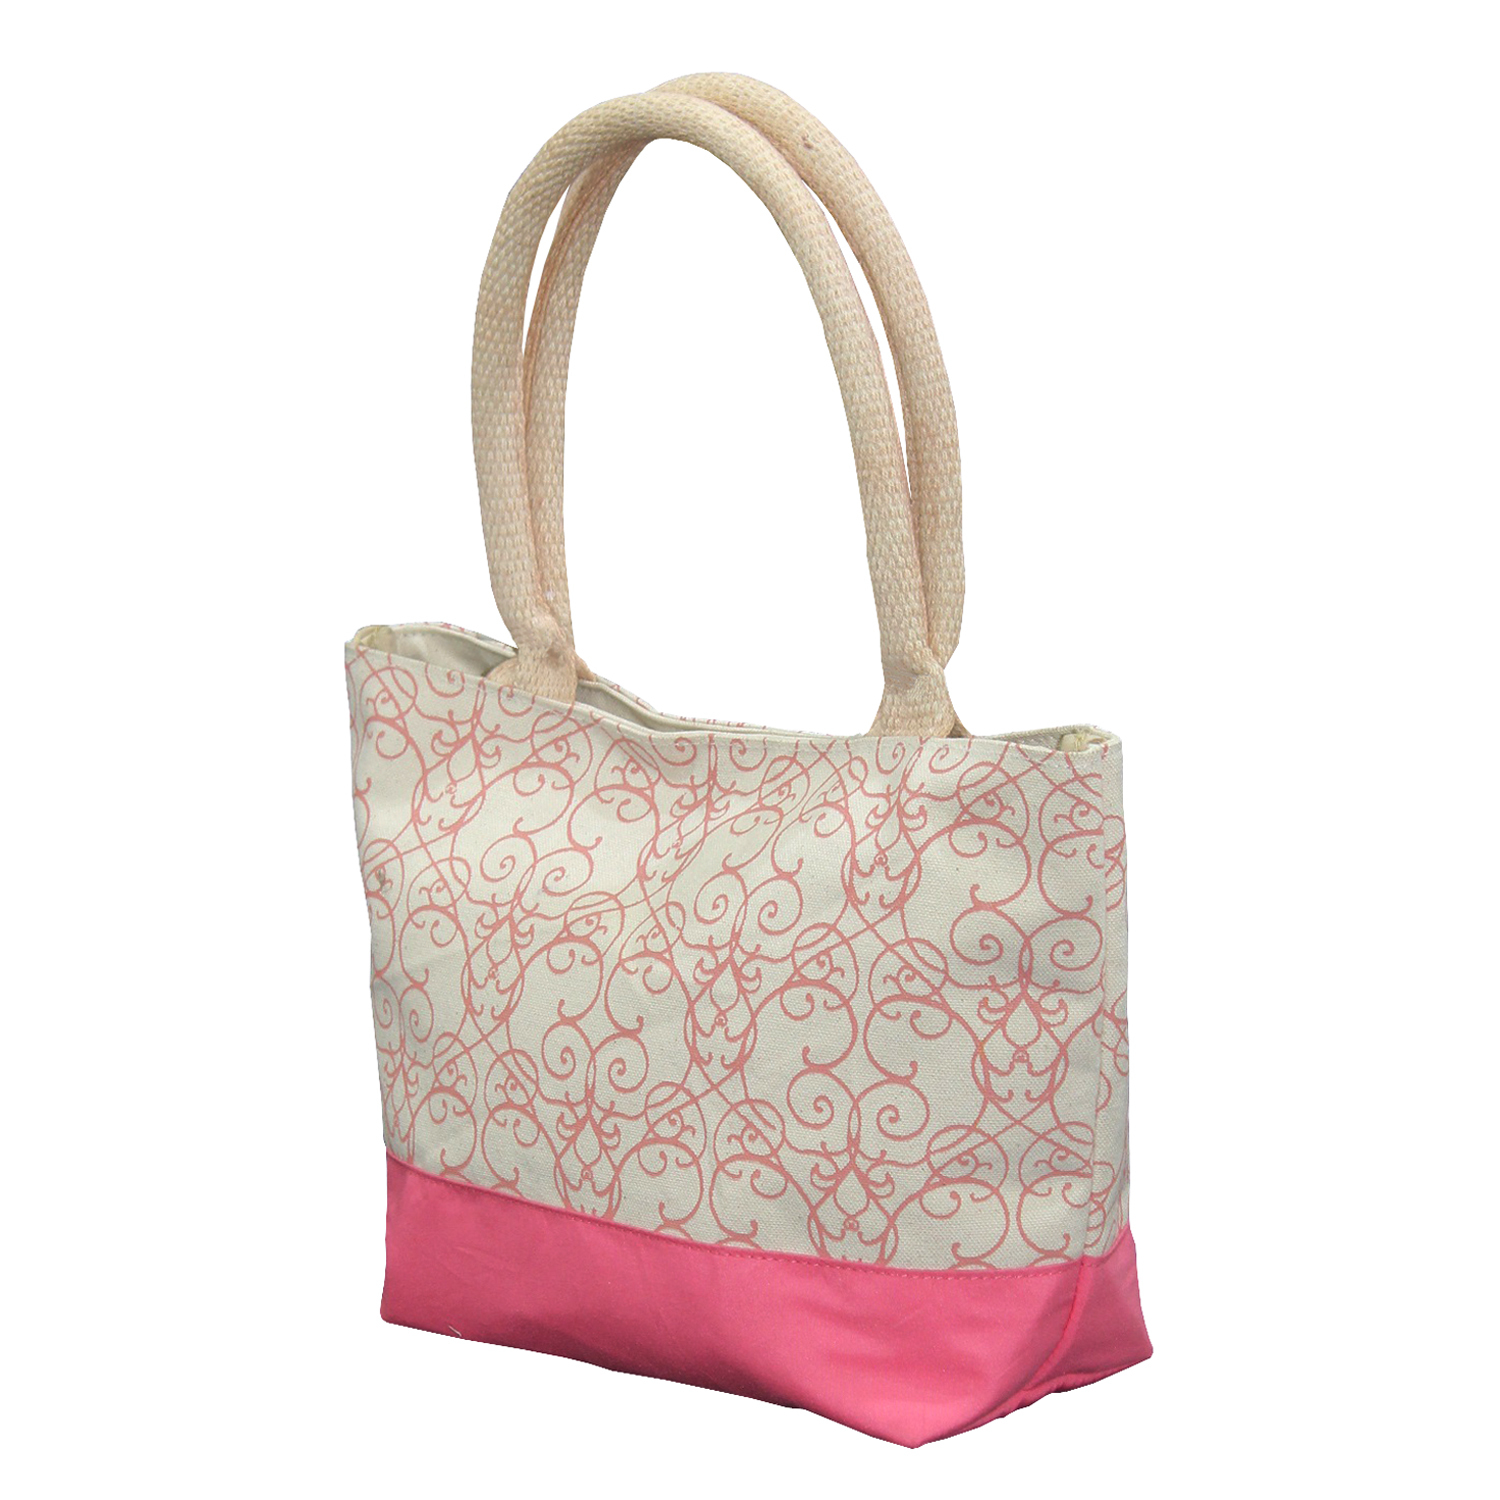 12 Oz Natural Canvas Printed Tote Bag With Inside Lining